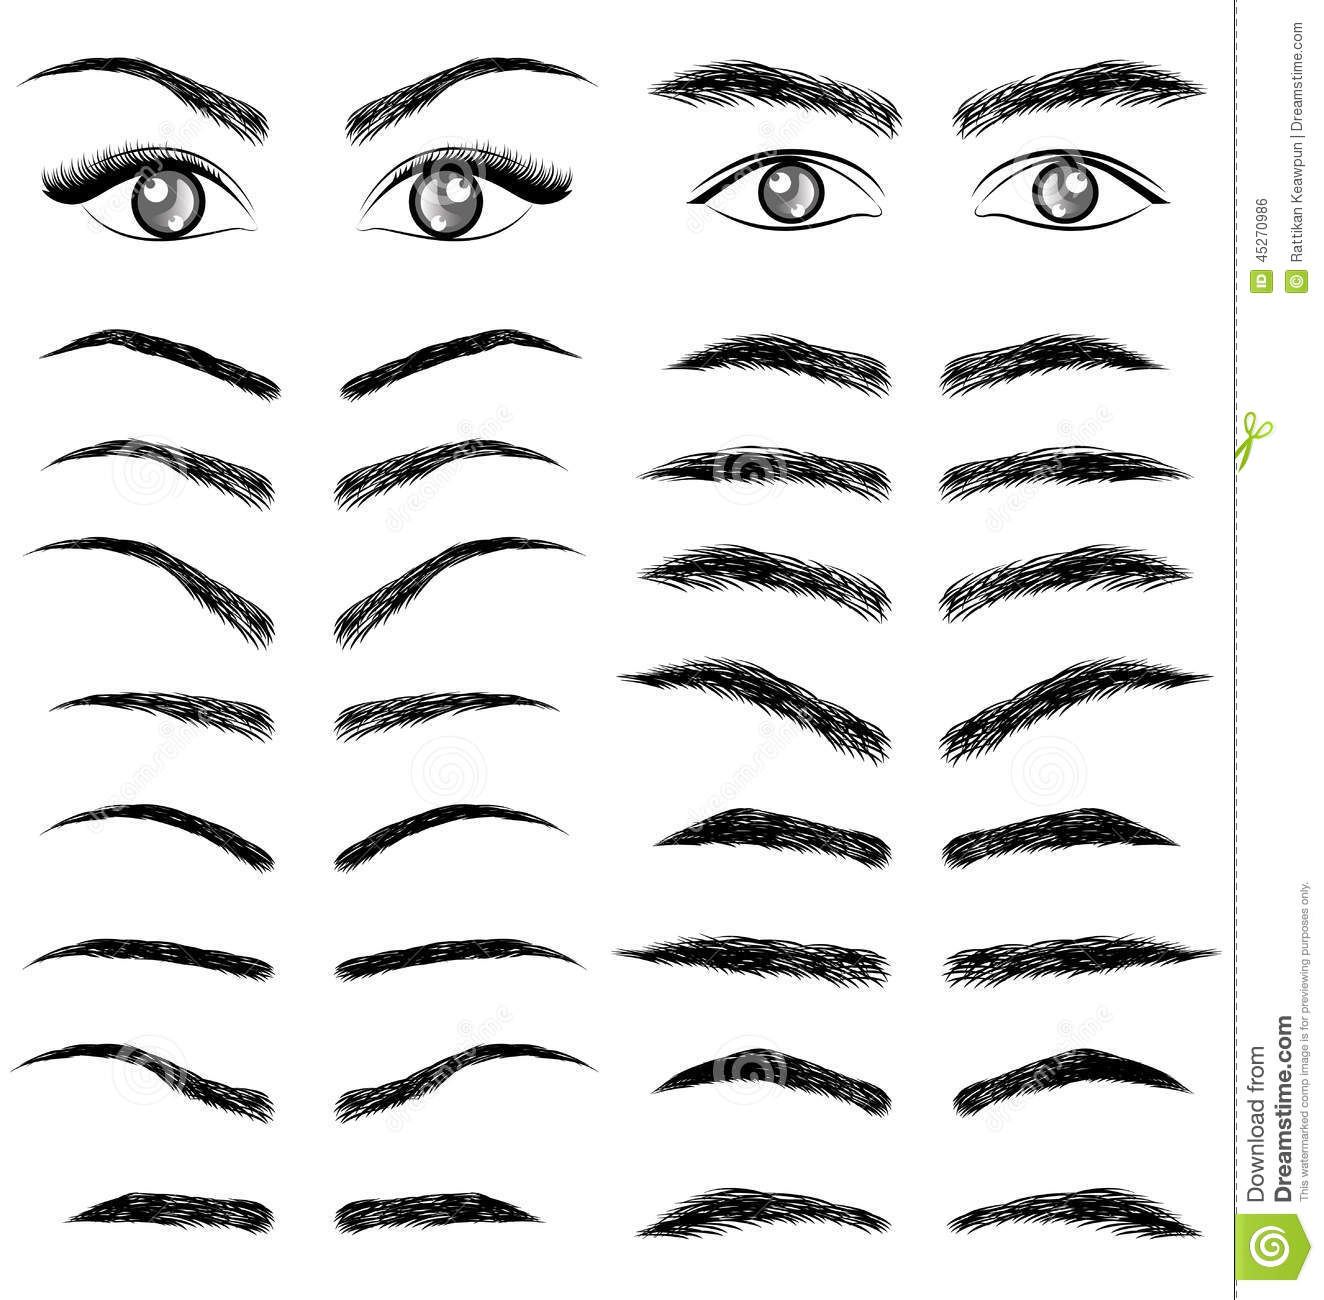 how to draw a nice eyebrow